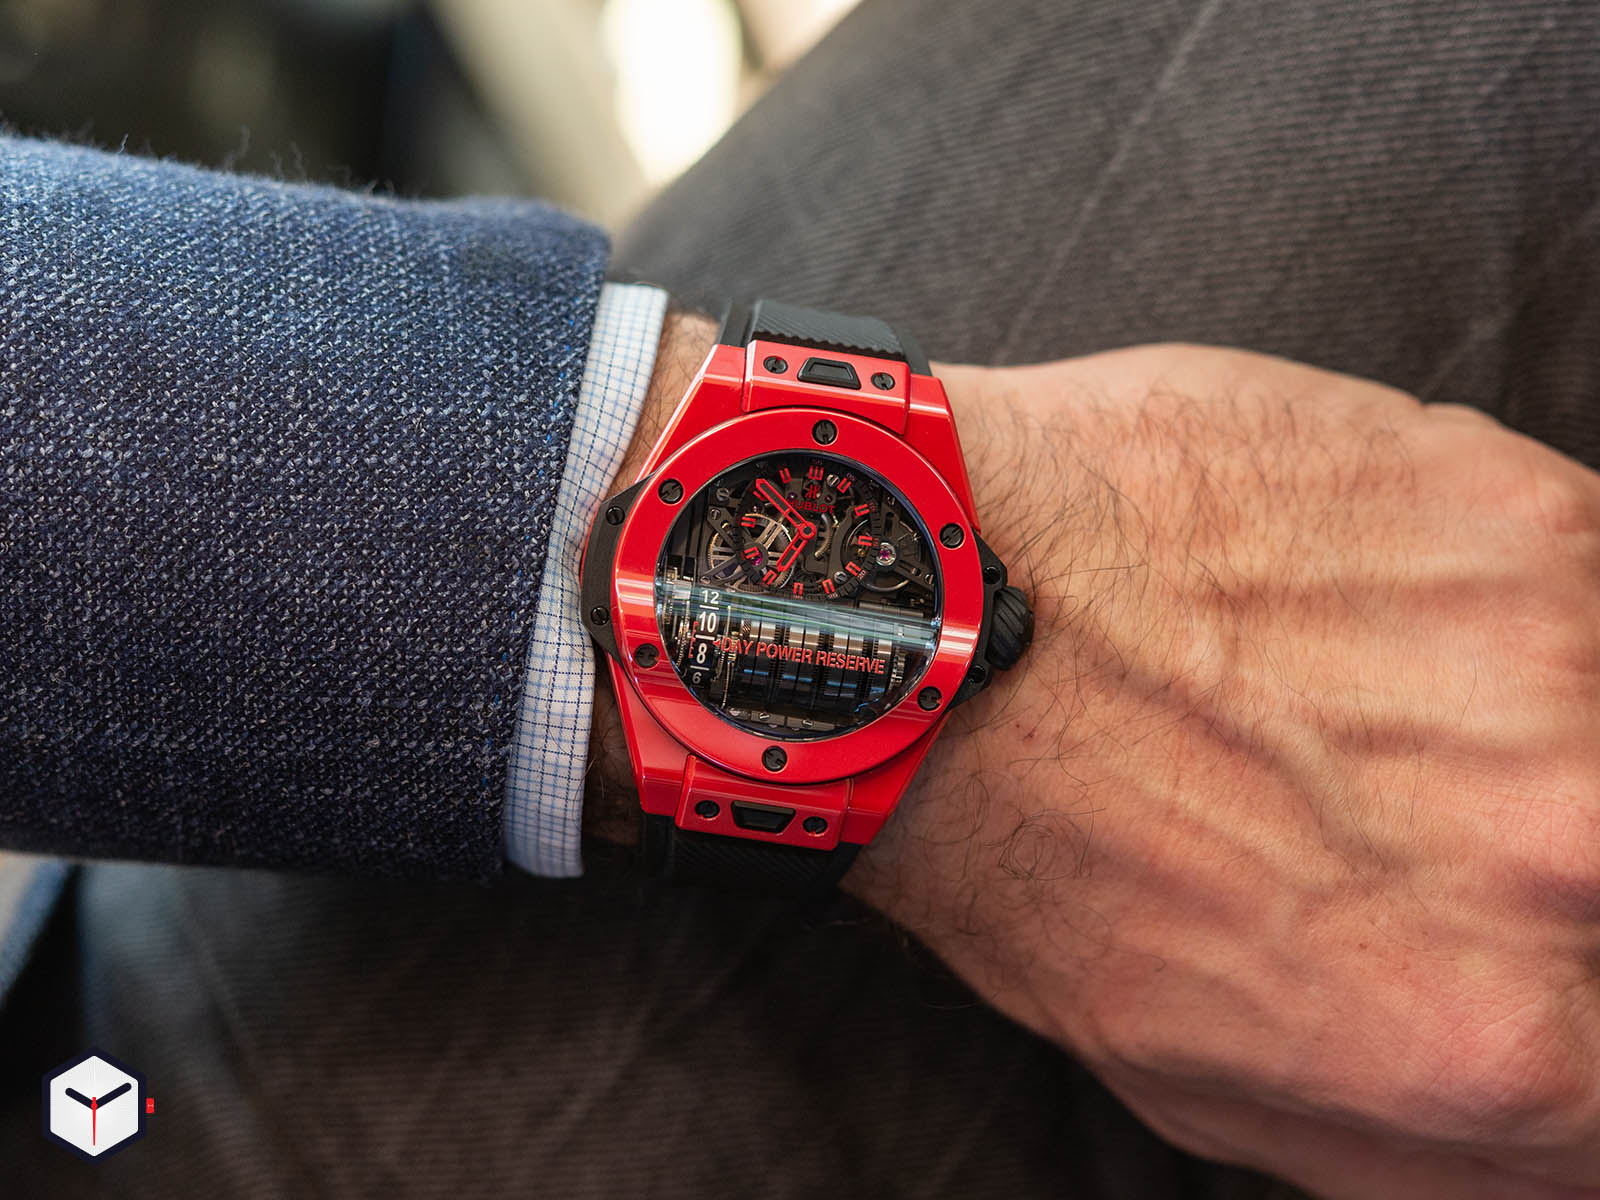 911-cf-0113-rx-hublot-big-bang-mp-11-red-magic-6.jpg